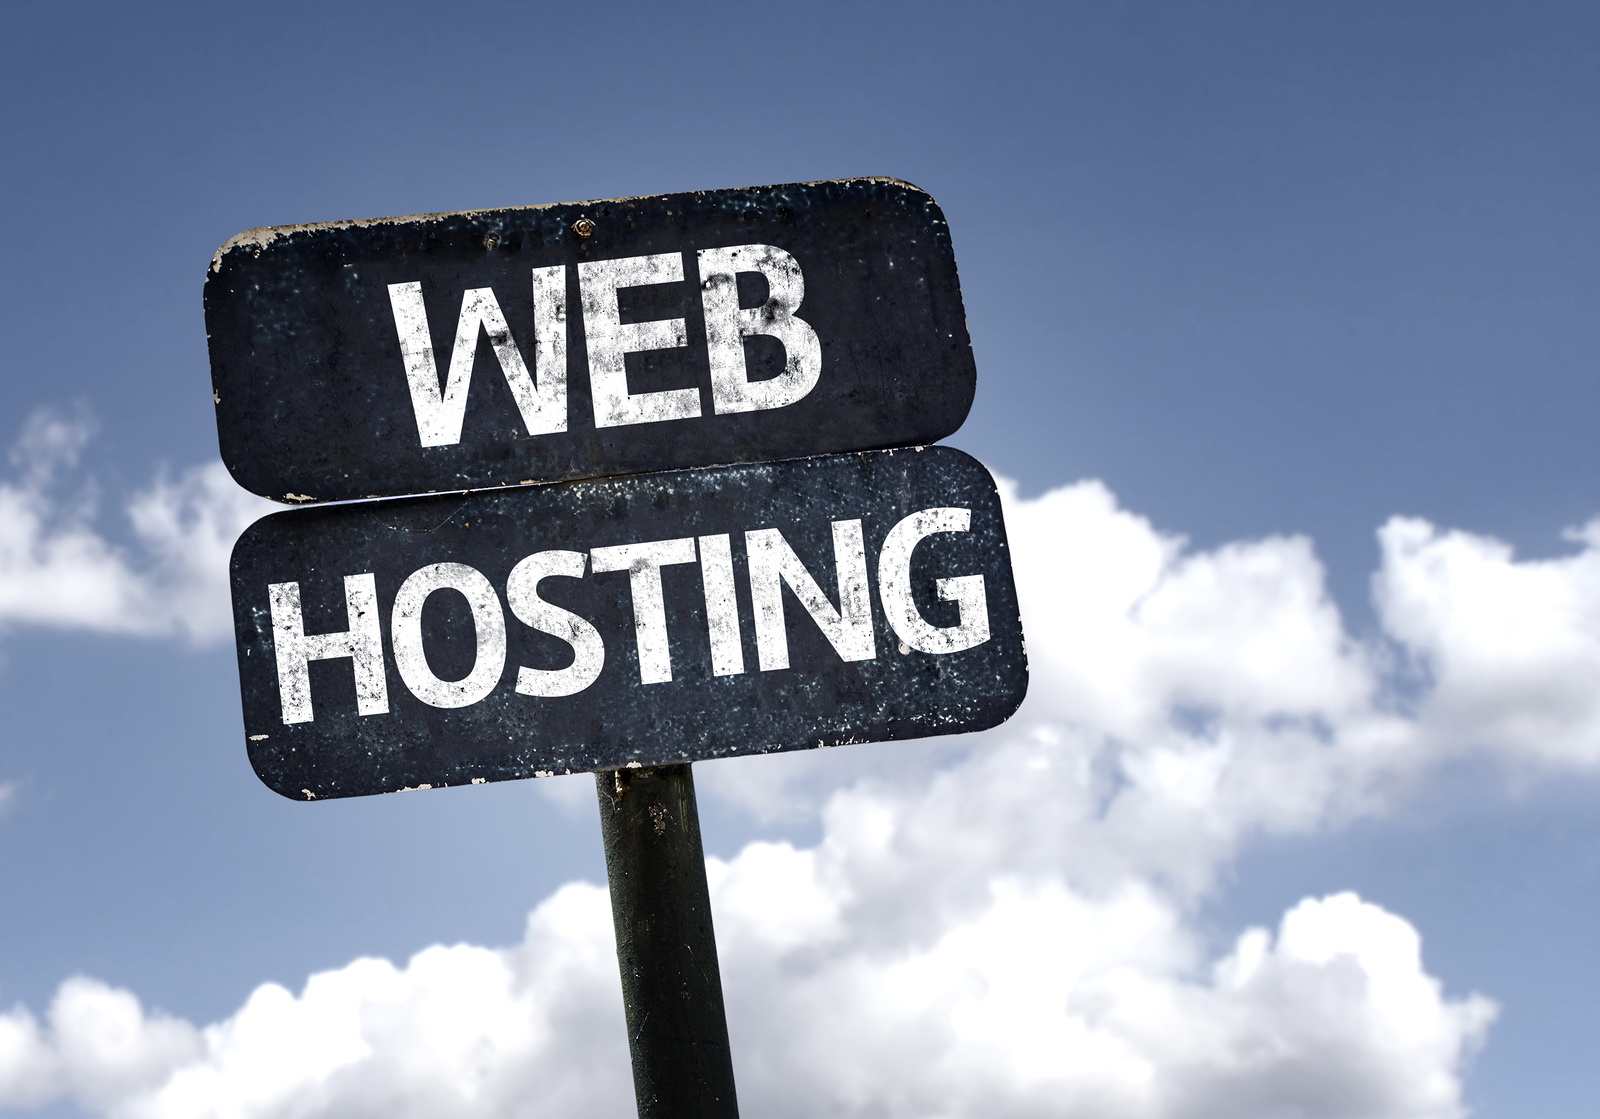 Web Hosting sign with clouds and sky background